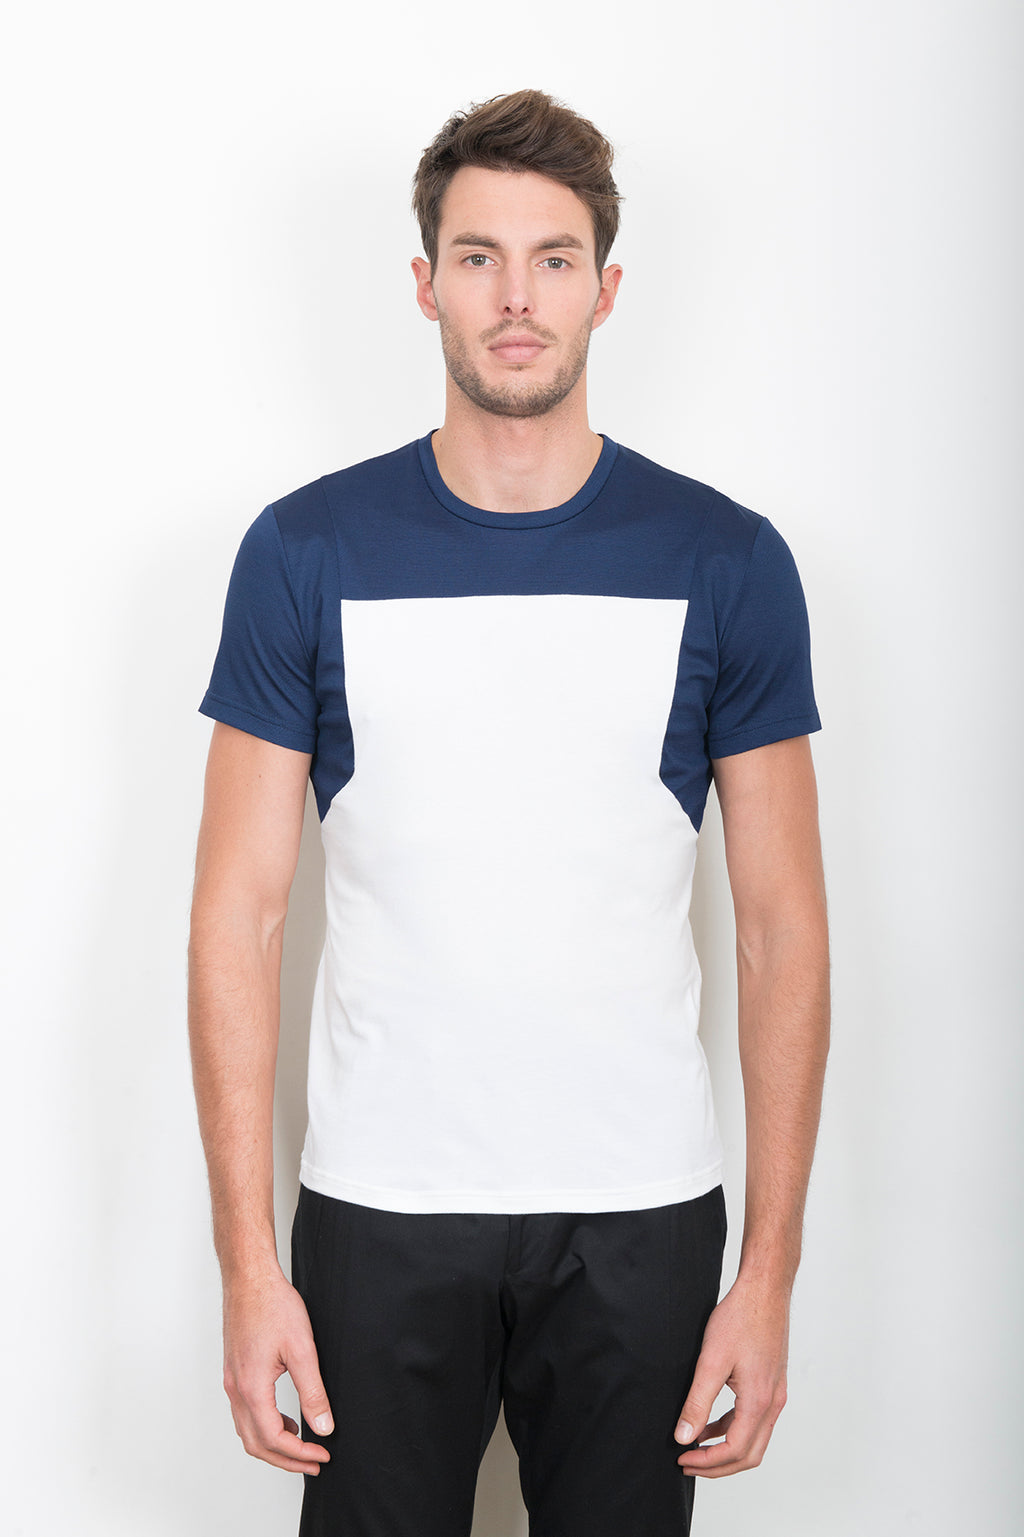 Sébastien Blondin haut top tee-shirt workwear tablier apron marine navy white blanc piqué sport sportswear chic été summer coton cotton maille knitwear créateur designer nouveau new basique basic mode fashion homme man men men's world